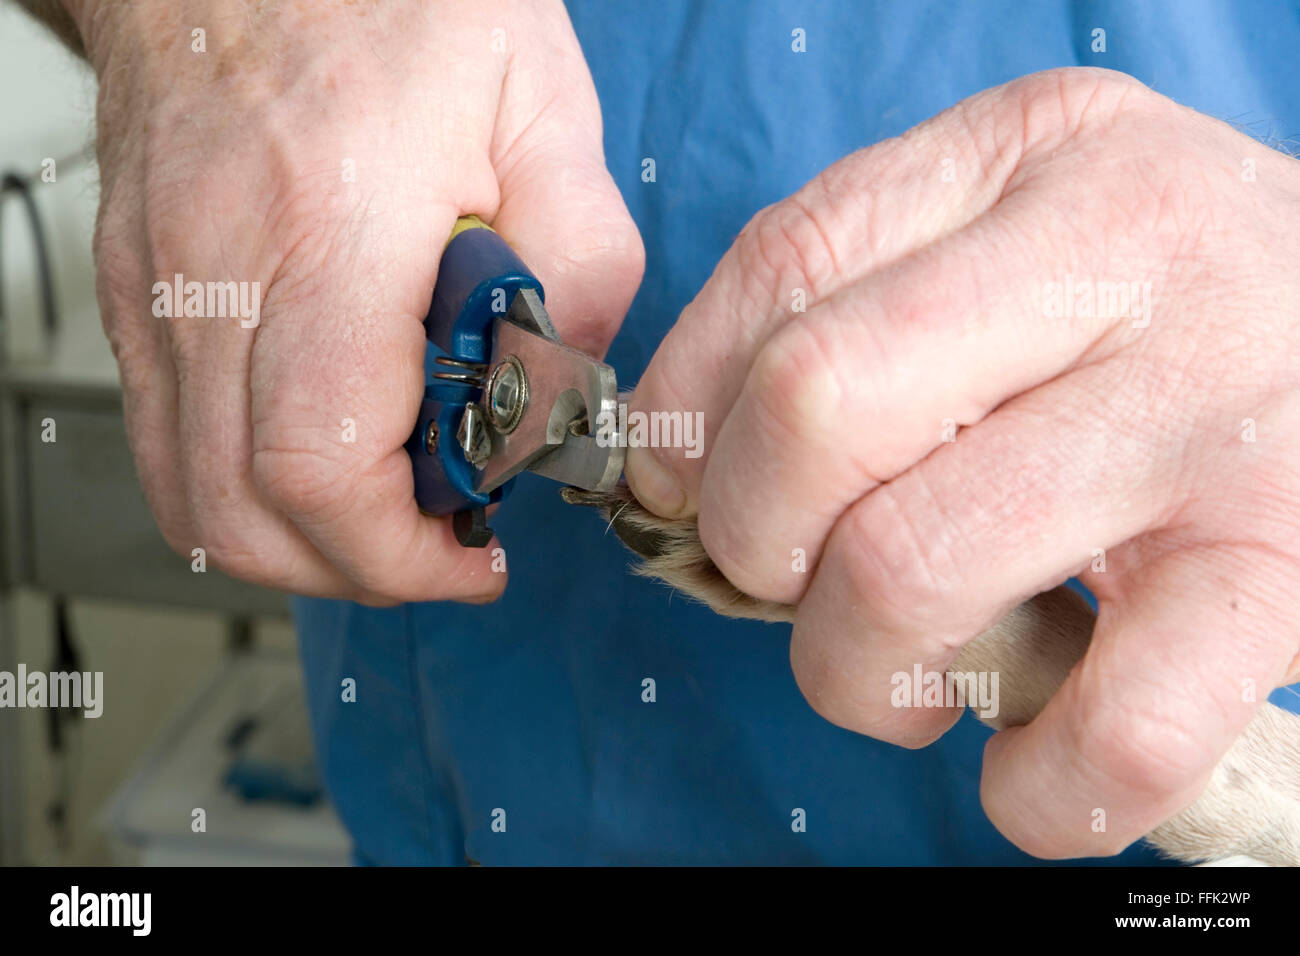 Vet hands with nail clippers and dog foot - Stock Image